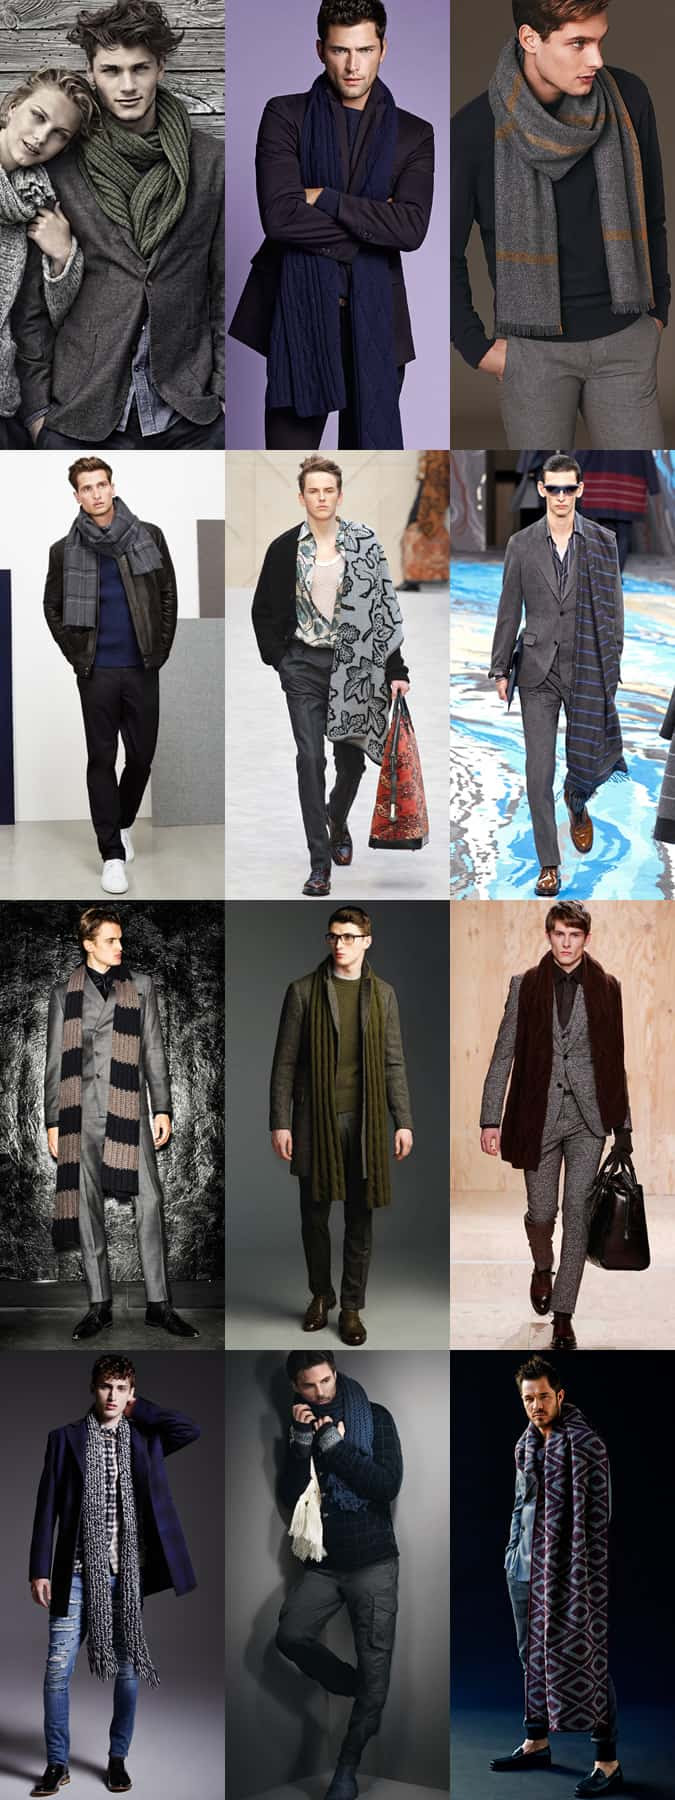 Men's Oversized Scarves and Mankets - Autumn/Winter Outfit Inspiration Lookbook